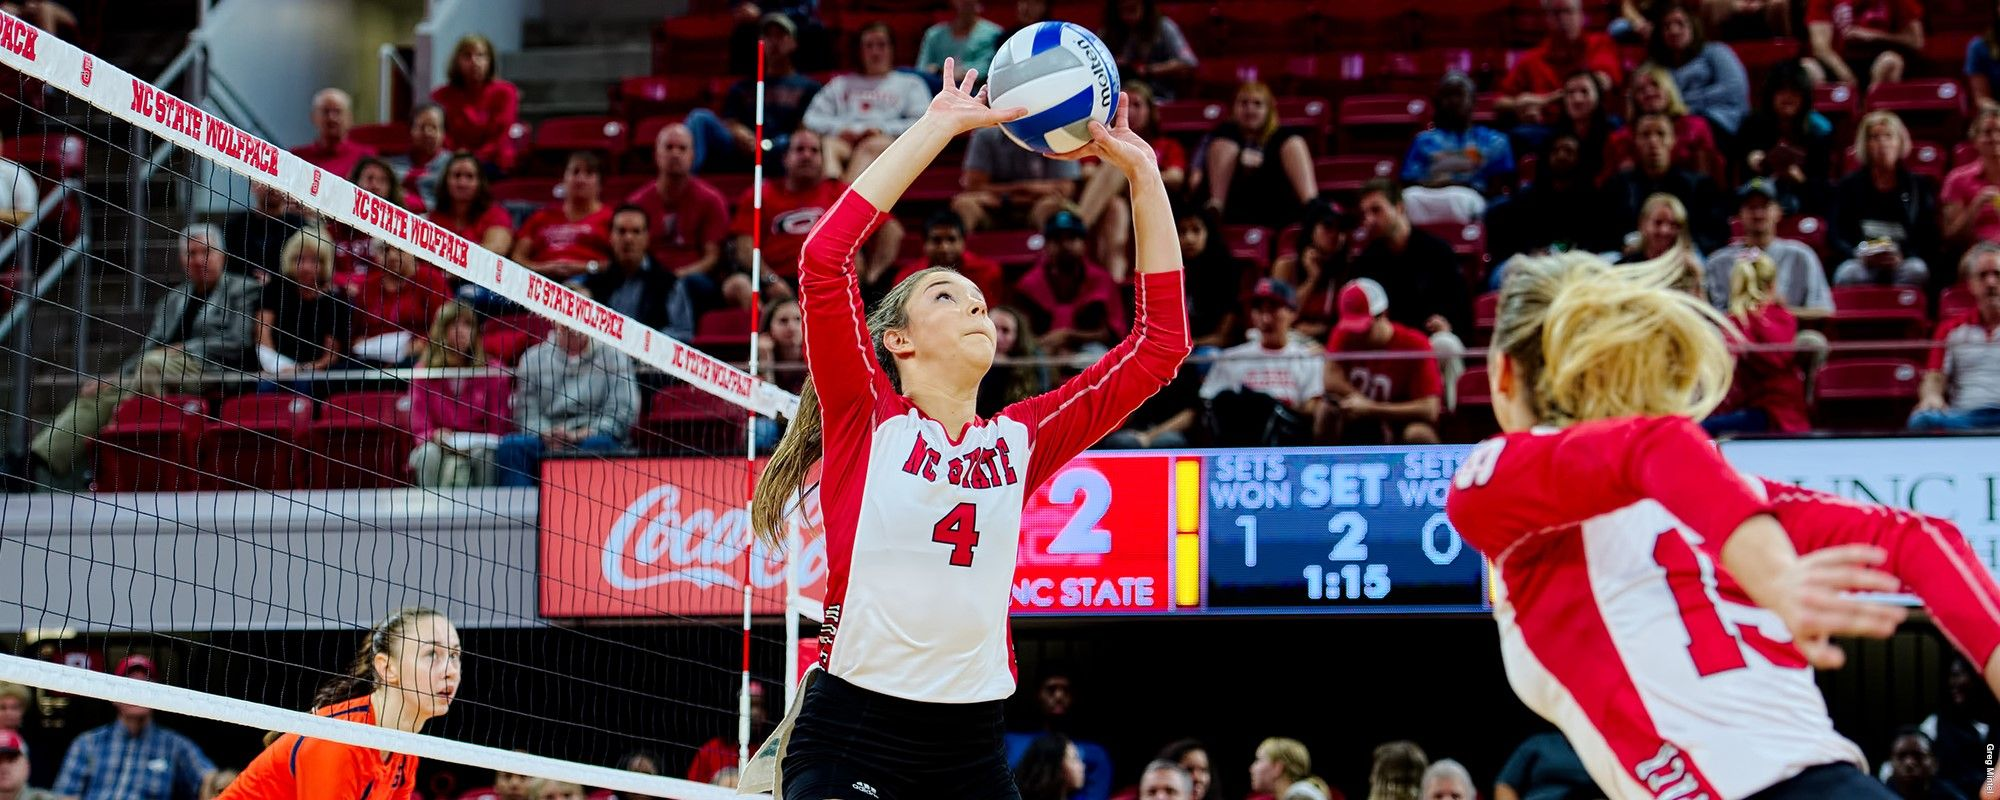 Kylie Pickrell Setting Fpp Women Volleyball Volleyball News Volleyballs